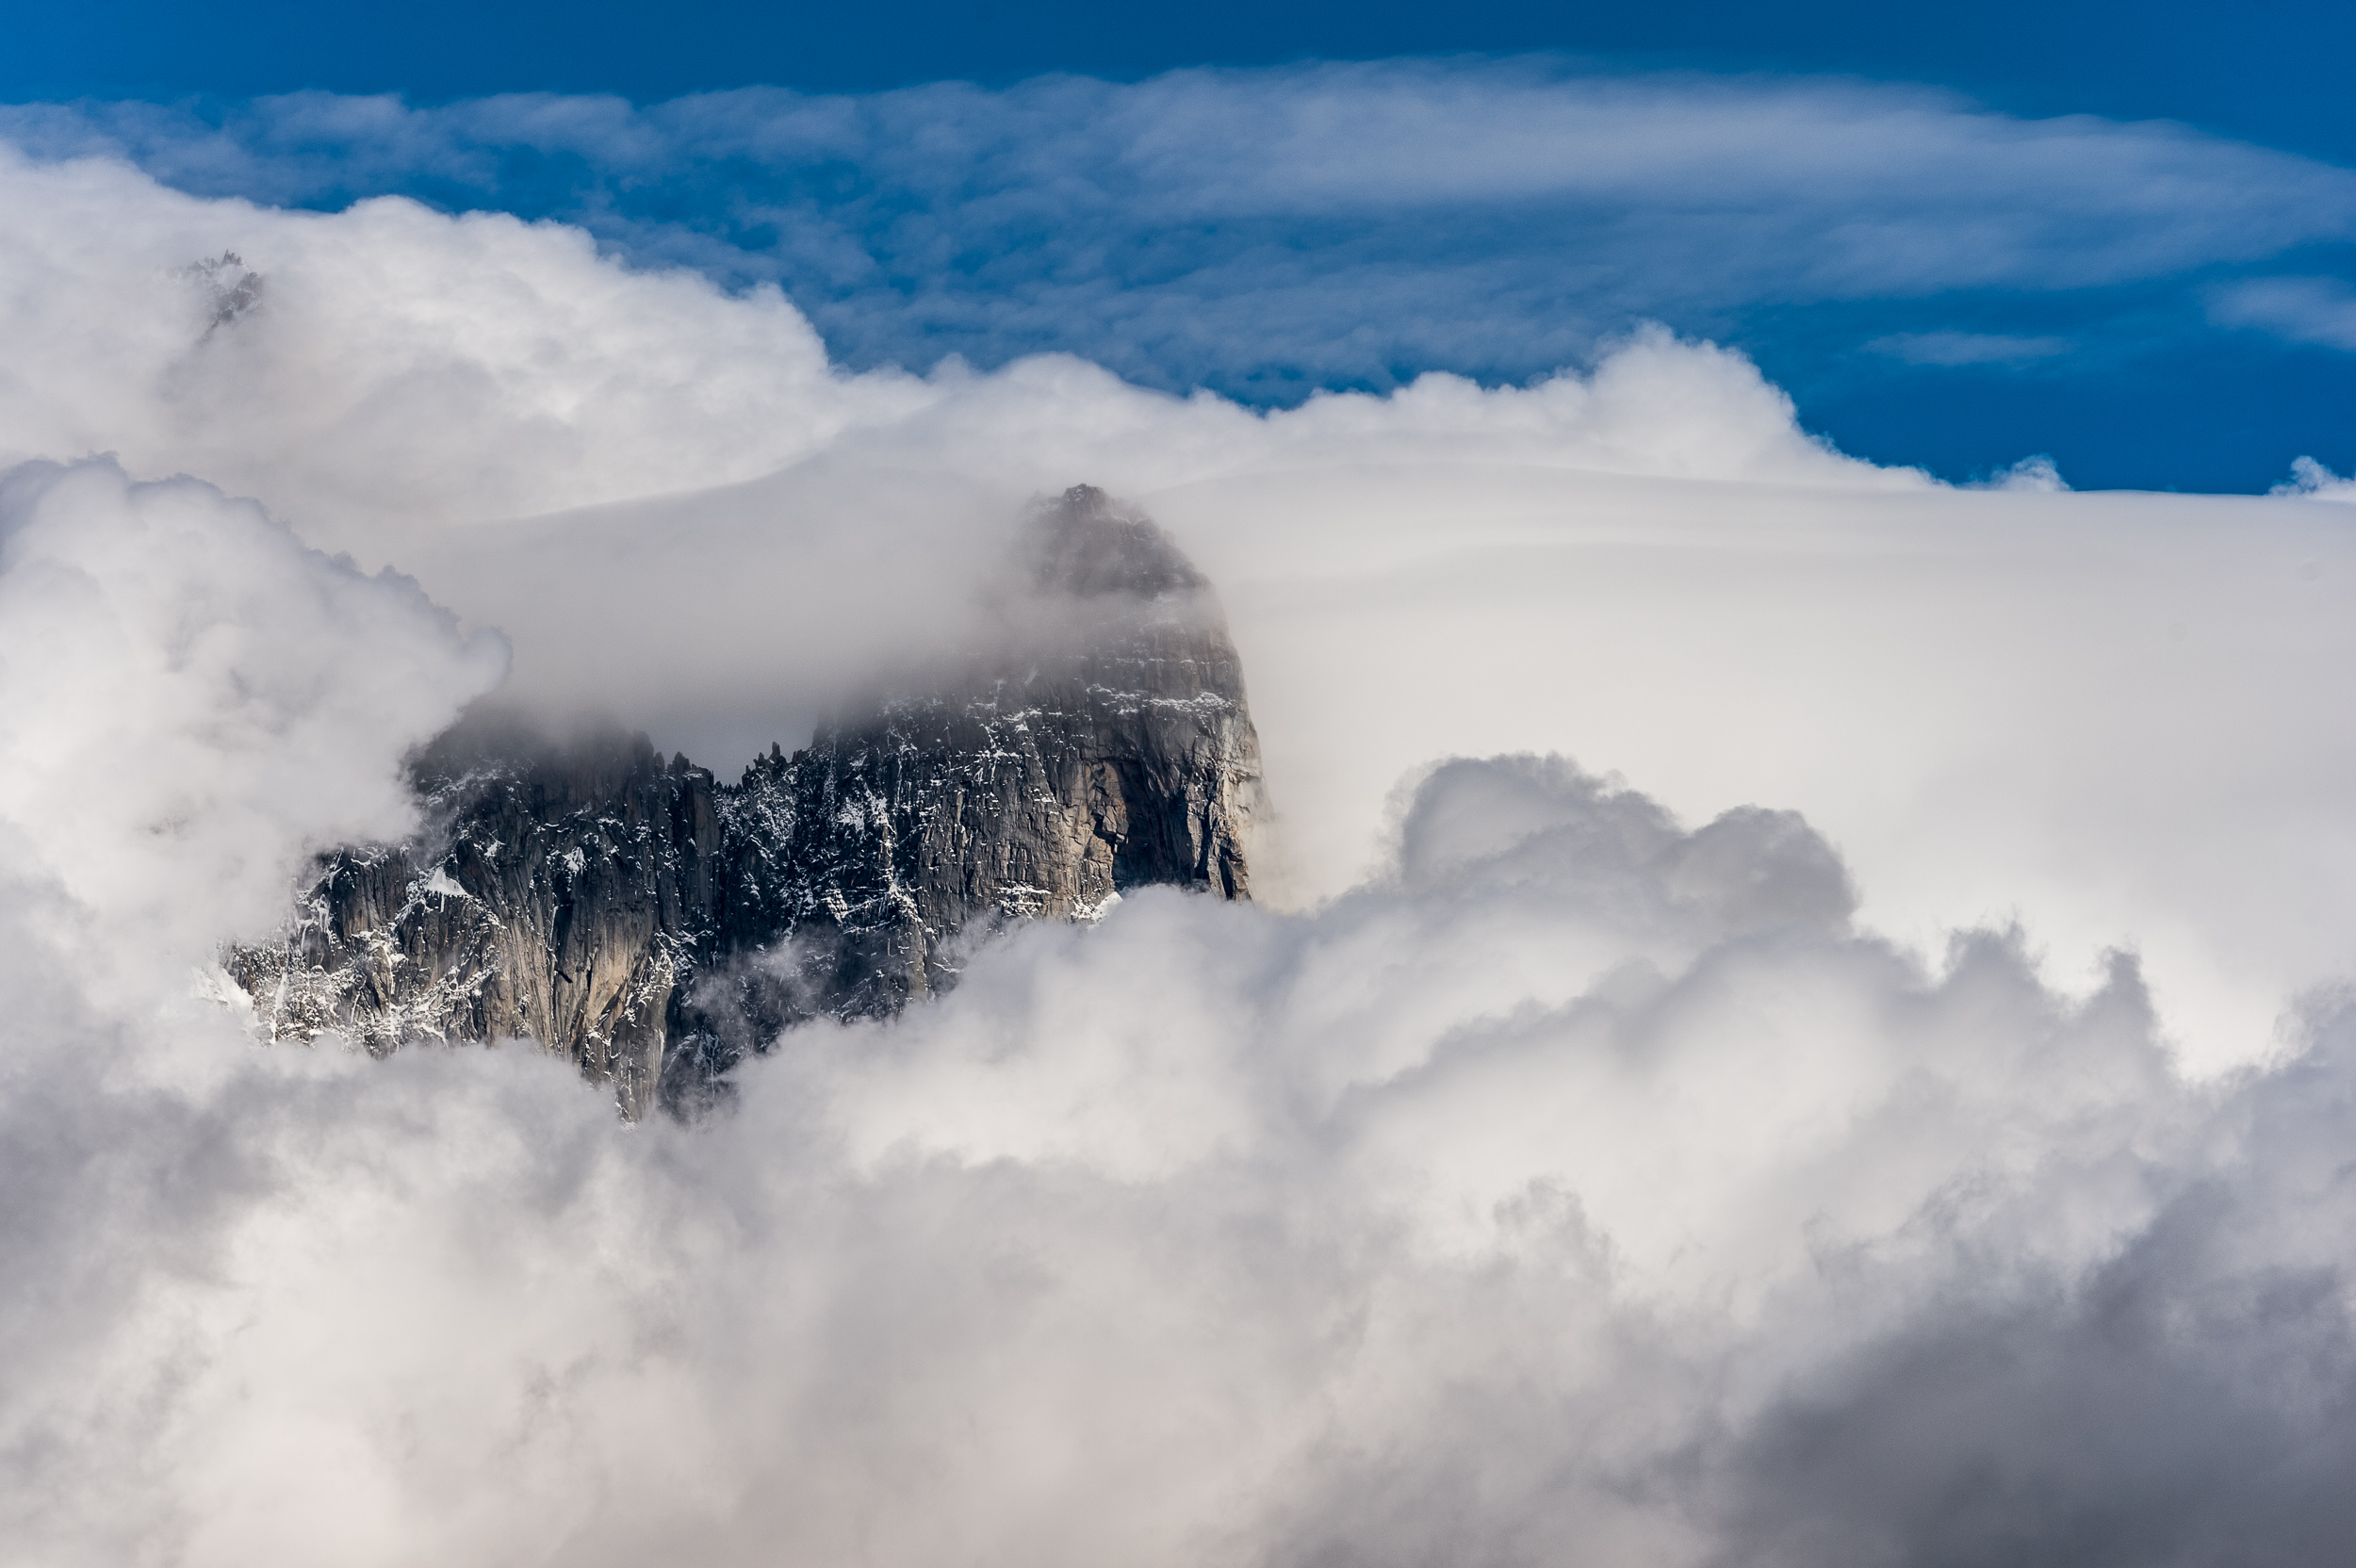 Afternoon clouds surrounding the summit of Aiguille du Dru above Chamonix, France.